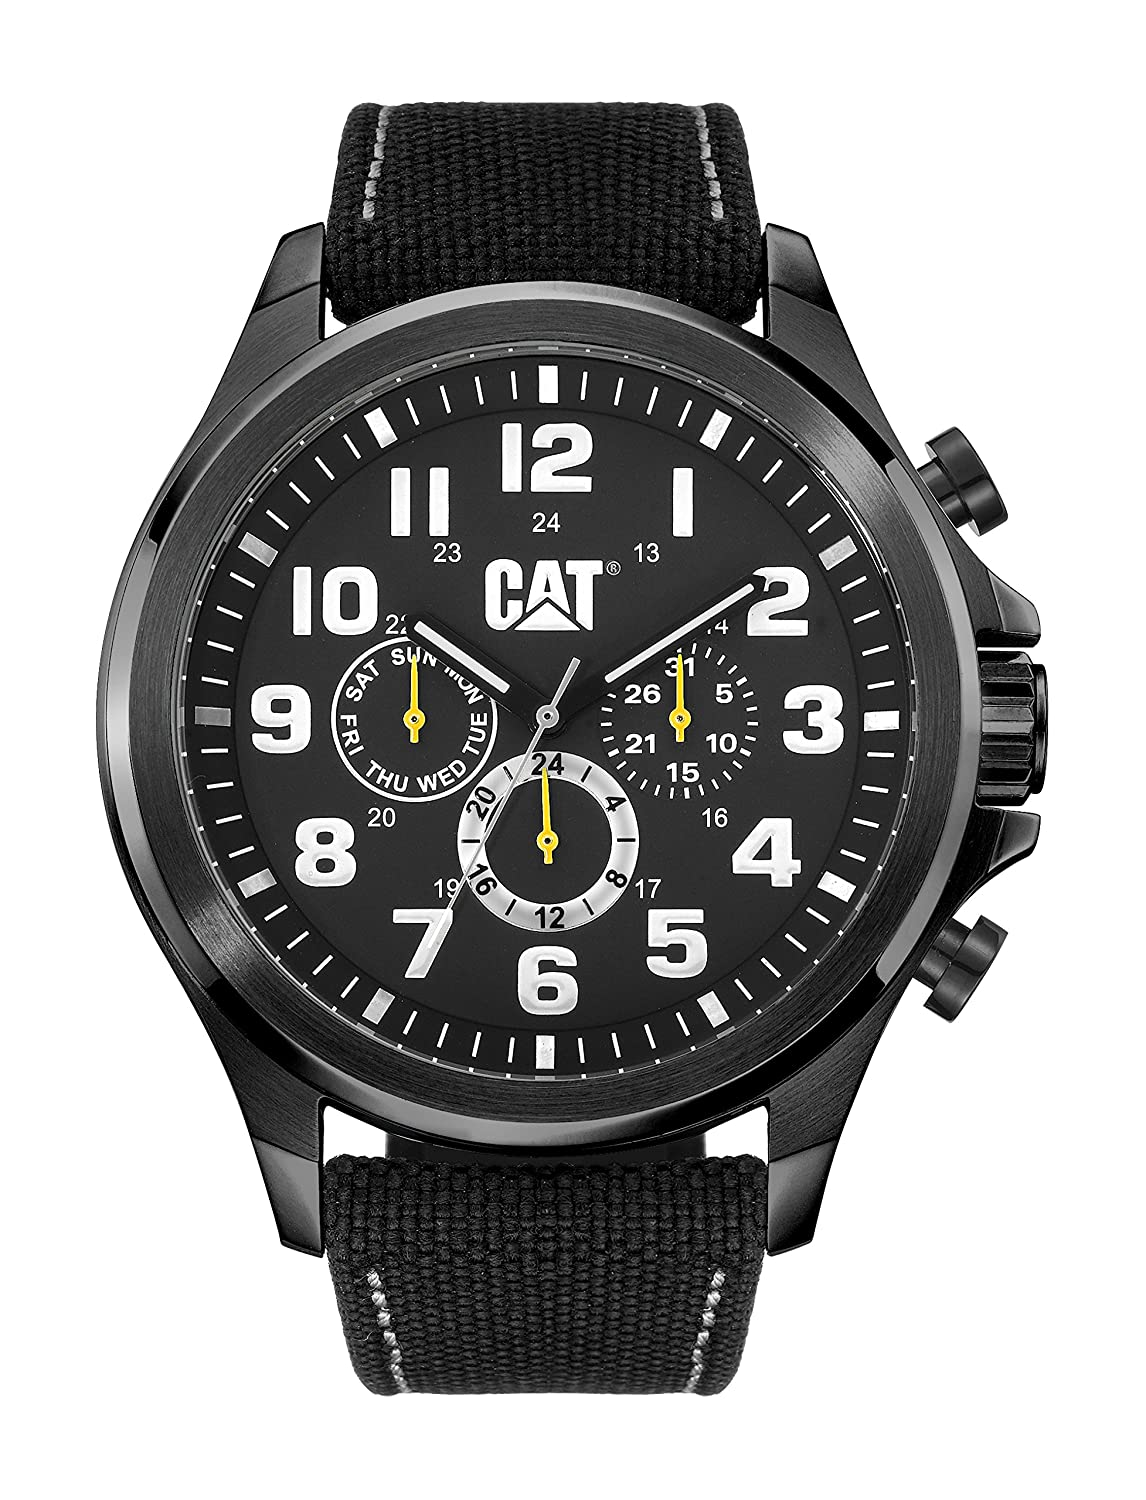 CAT WATCHES Herren Armbanduhr Chronograph Quarz Leder PU.169.64.111